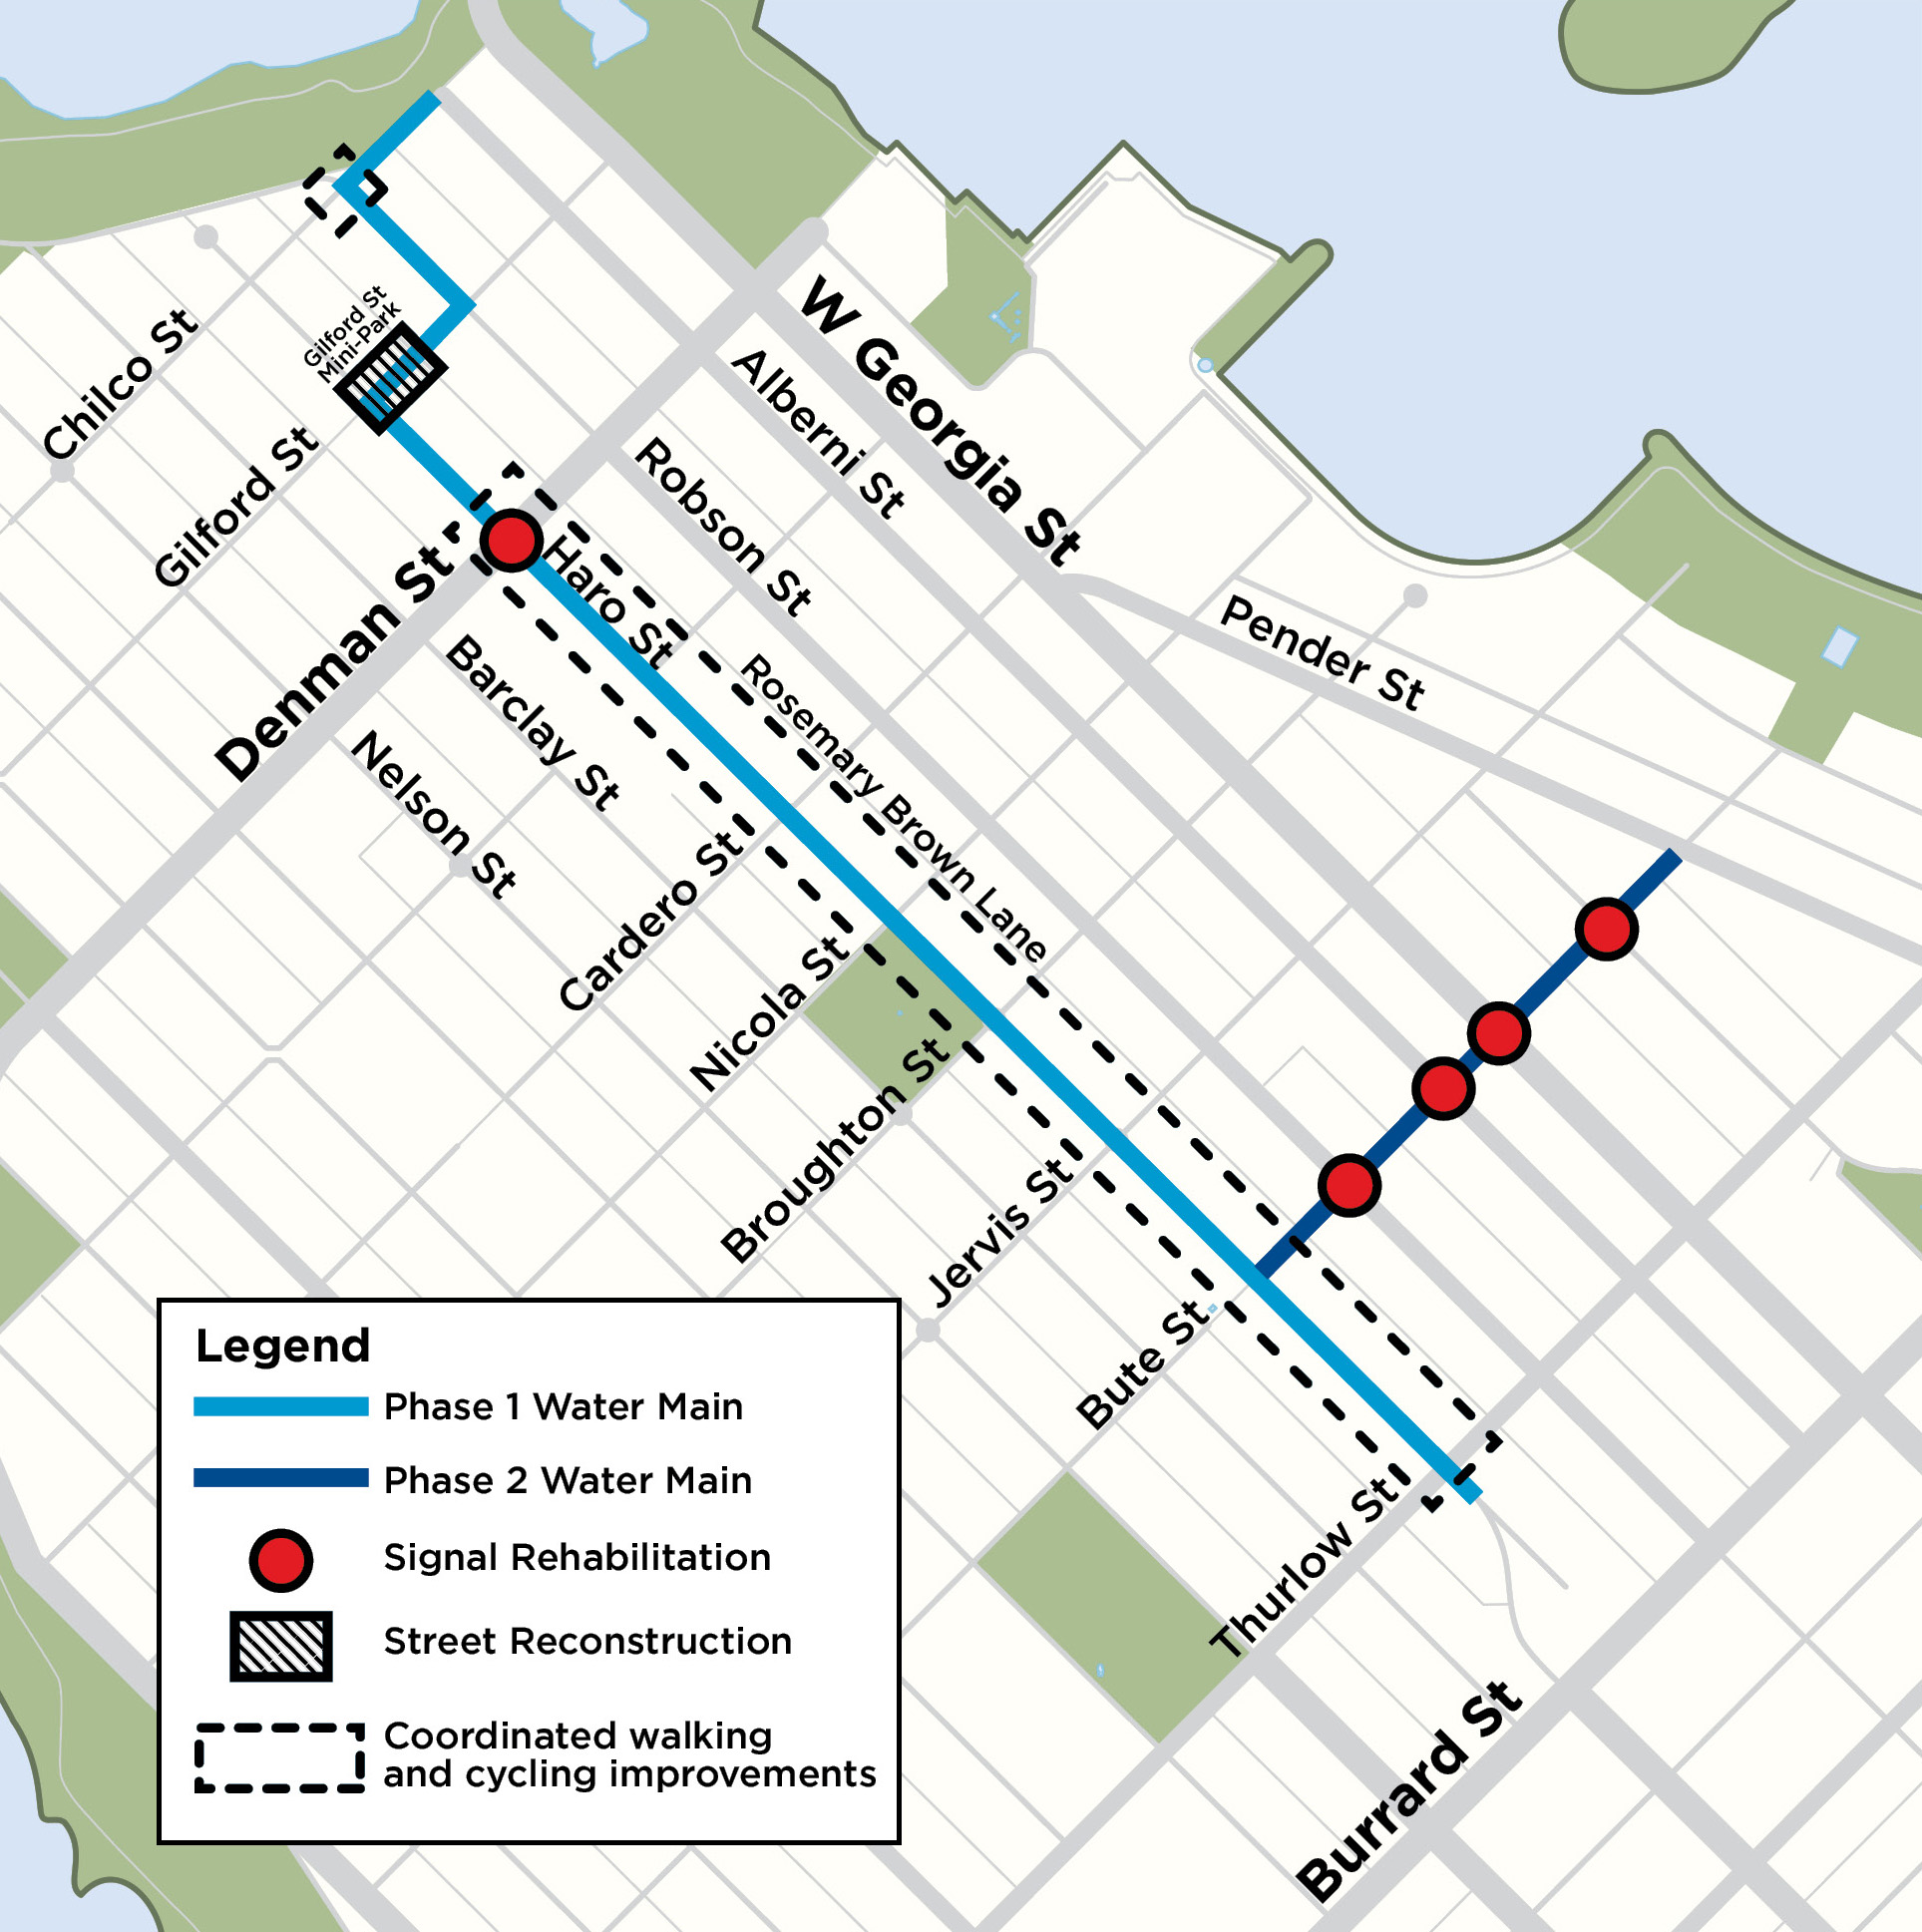 The route of the West End water line upgrades. (click to enlarge)